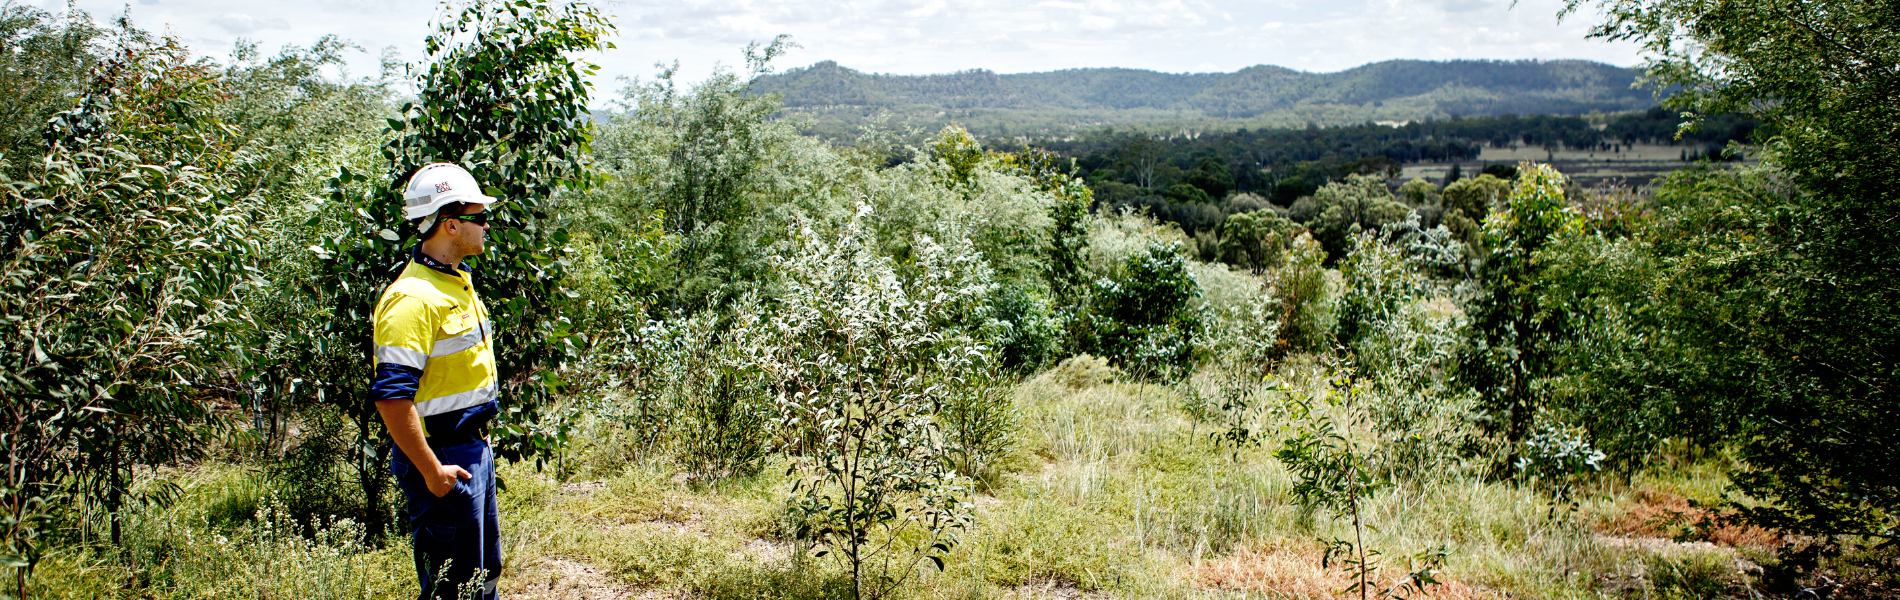 Rehabilitation Case Study: Native seed reclaiming on mined land (Yancoal MTW and HVO sites)